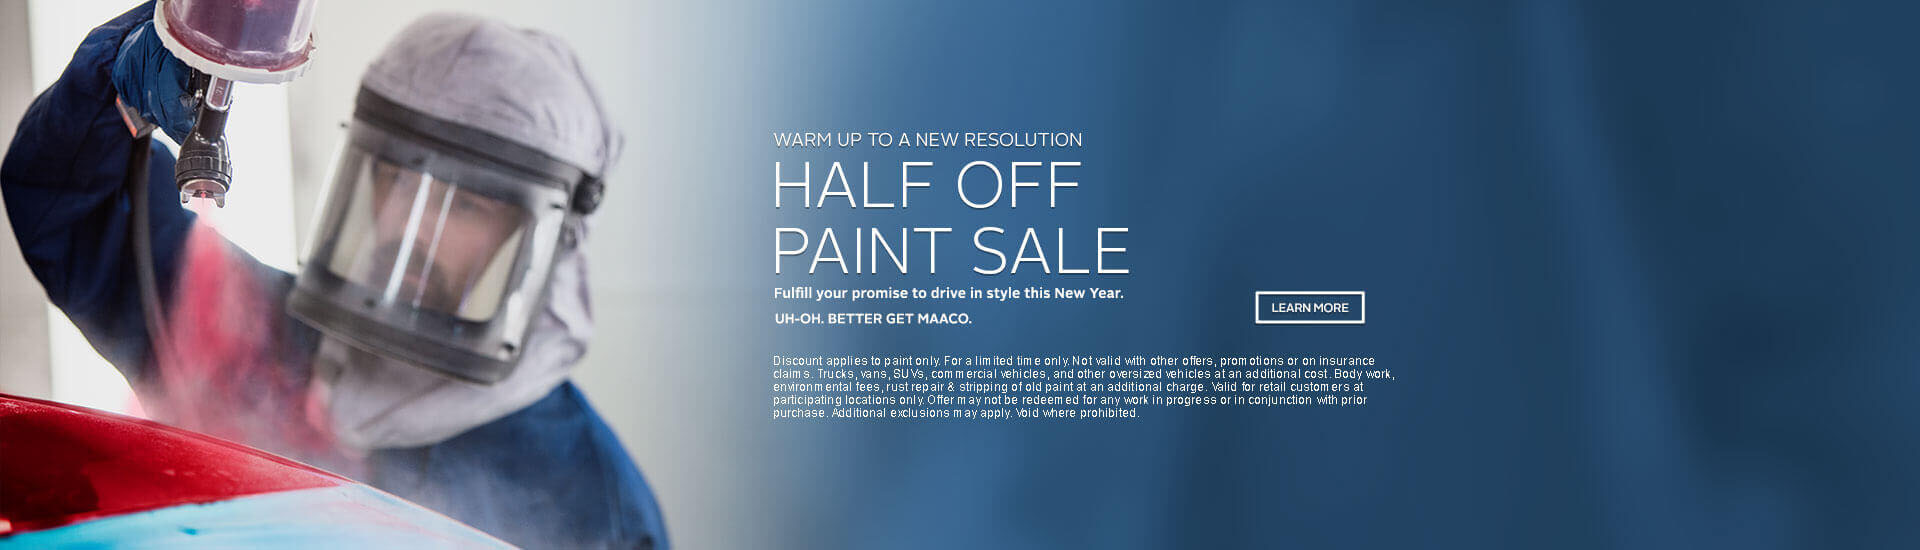 Maaco: Half Off Paint Sale Promotion